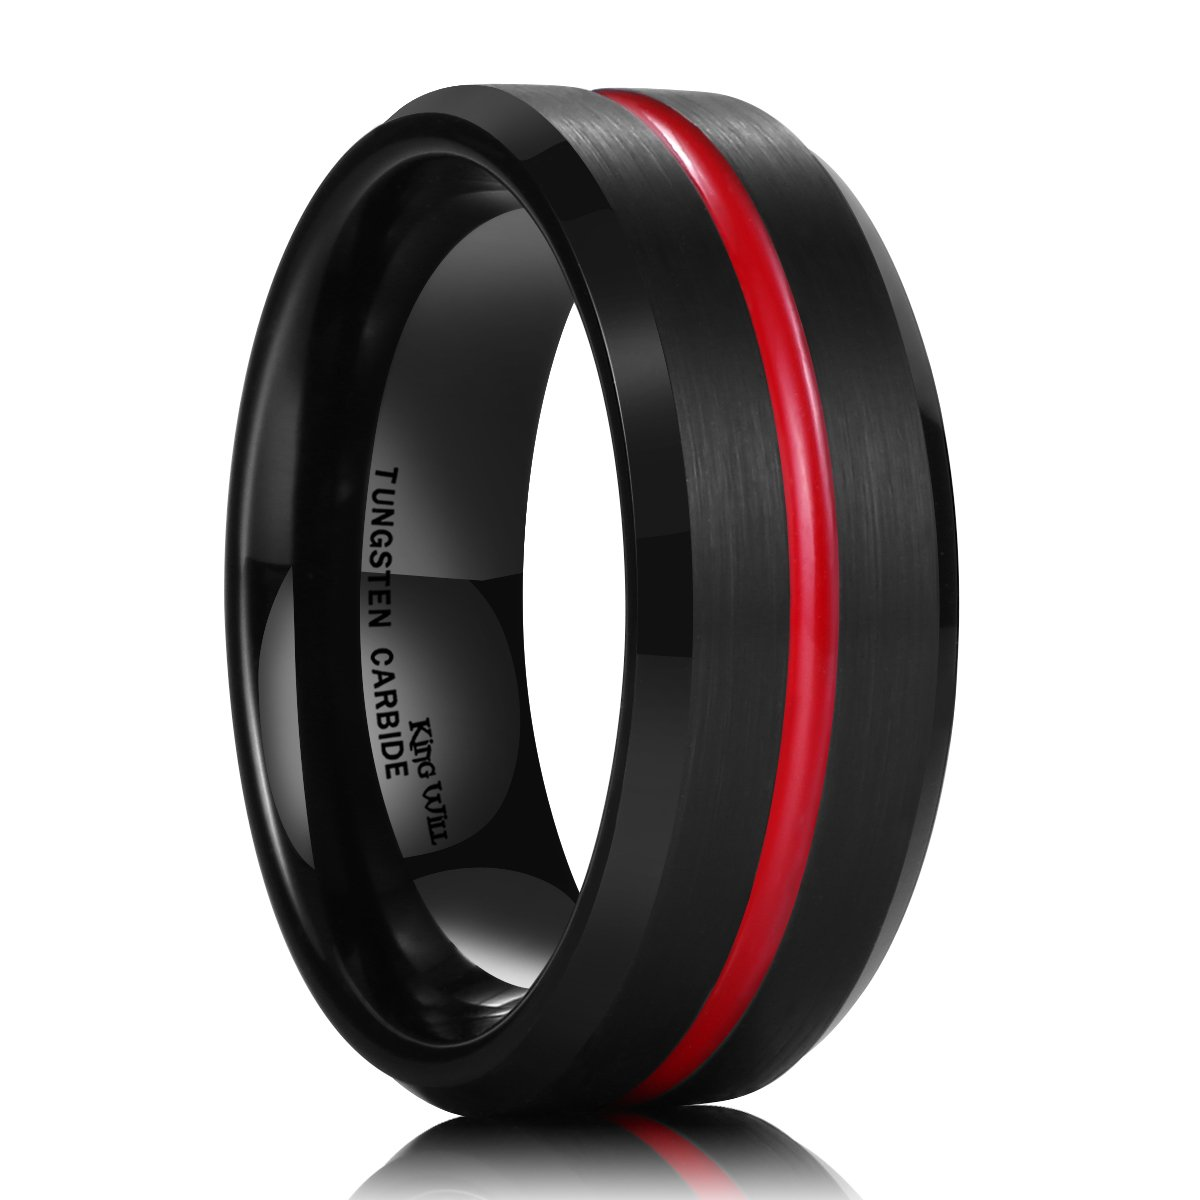 King Will Thin Red Groove Black Brushed Tungsten Carbide Wedding Band Ring Comfort Fit 10.5